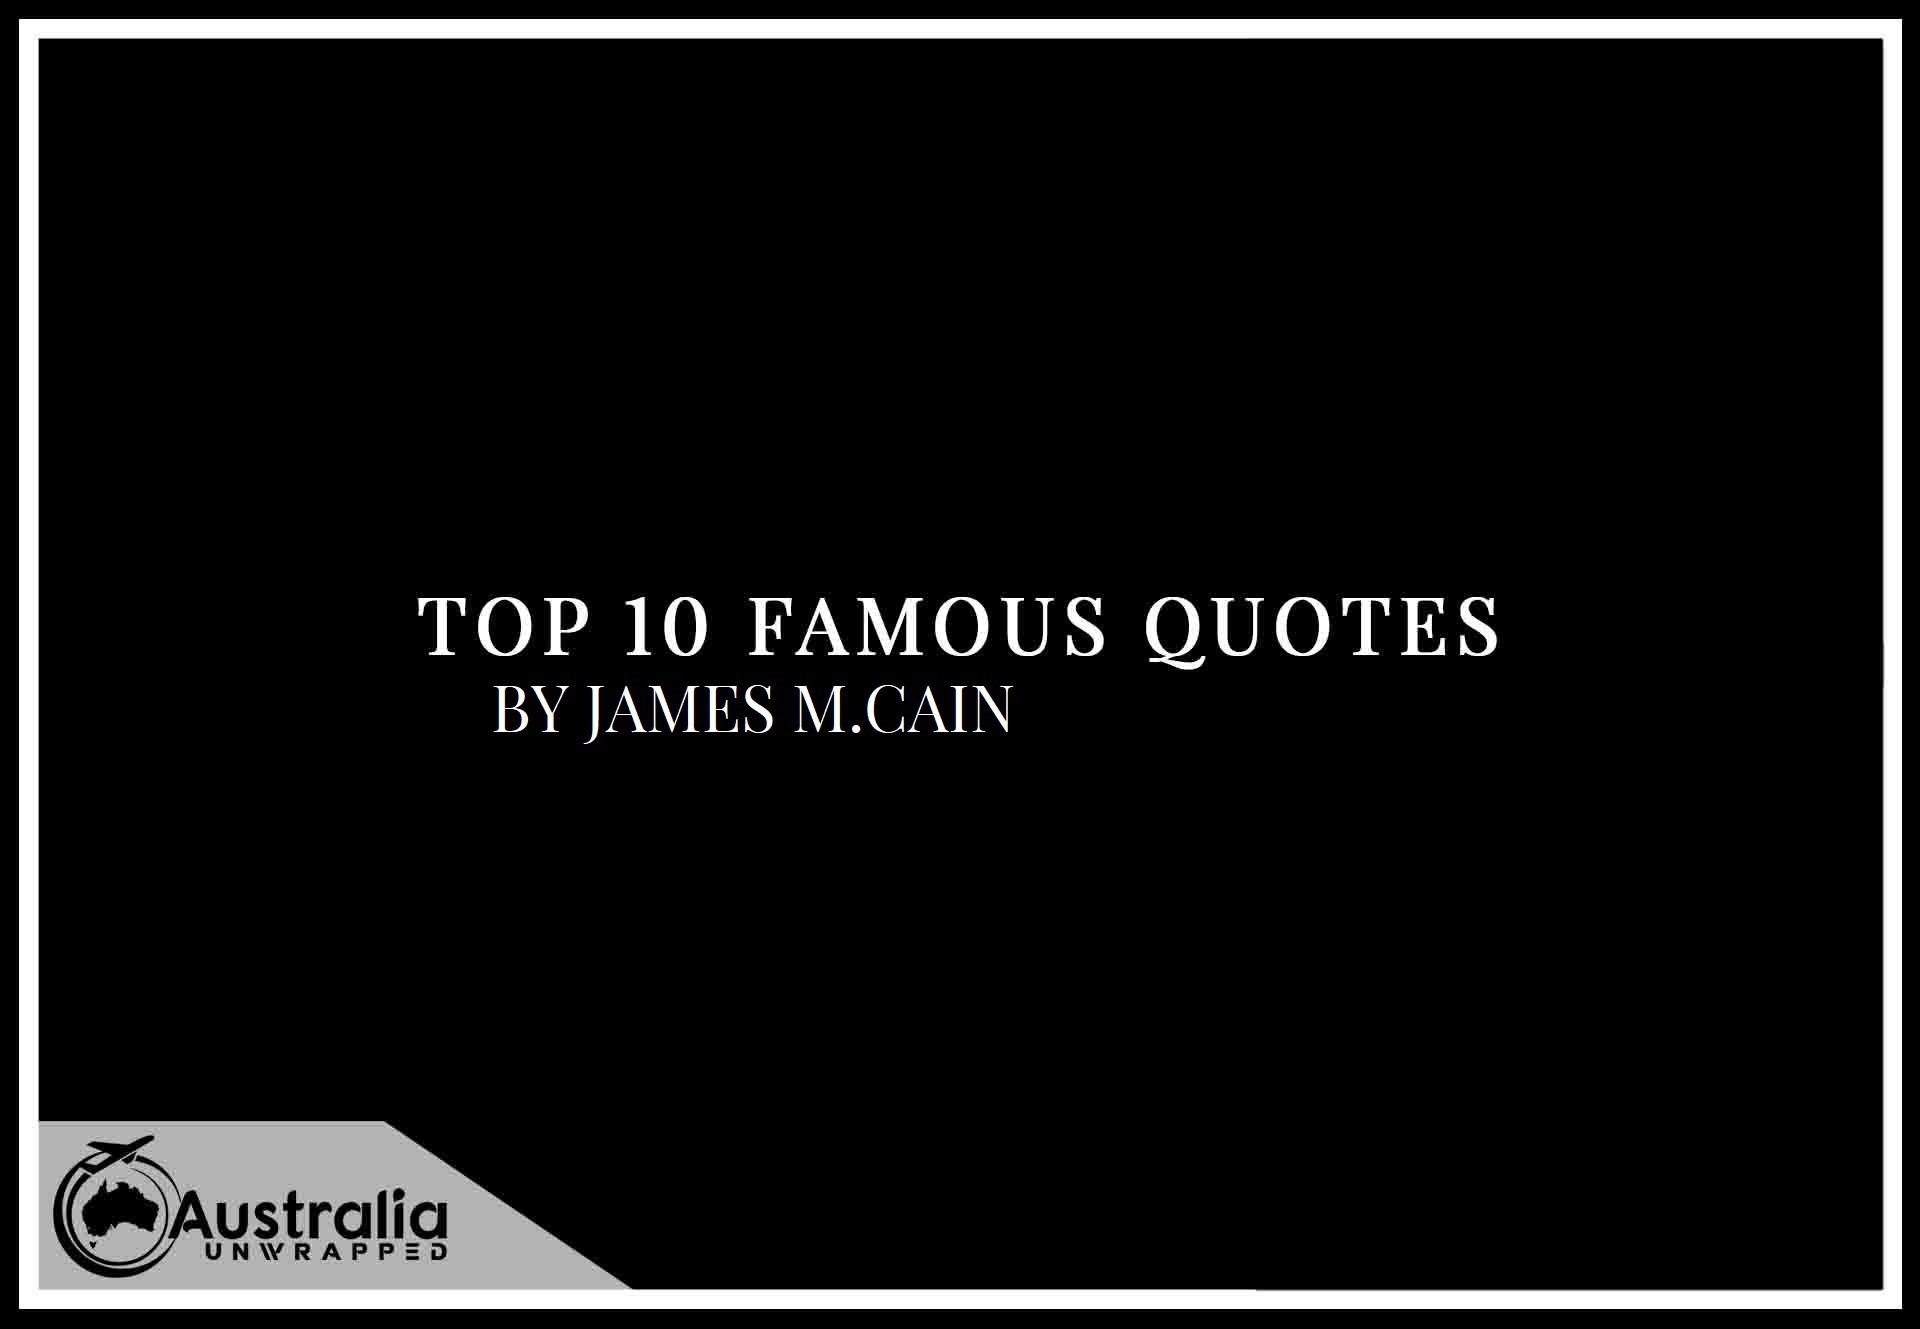 Top 10 Famous Quotes by Author James M. Cain